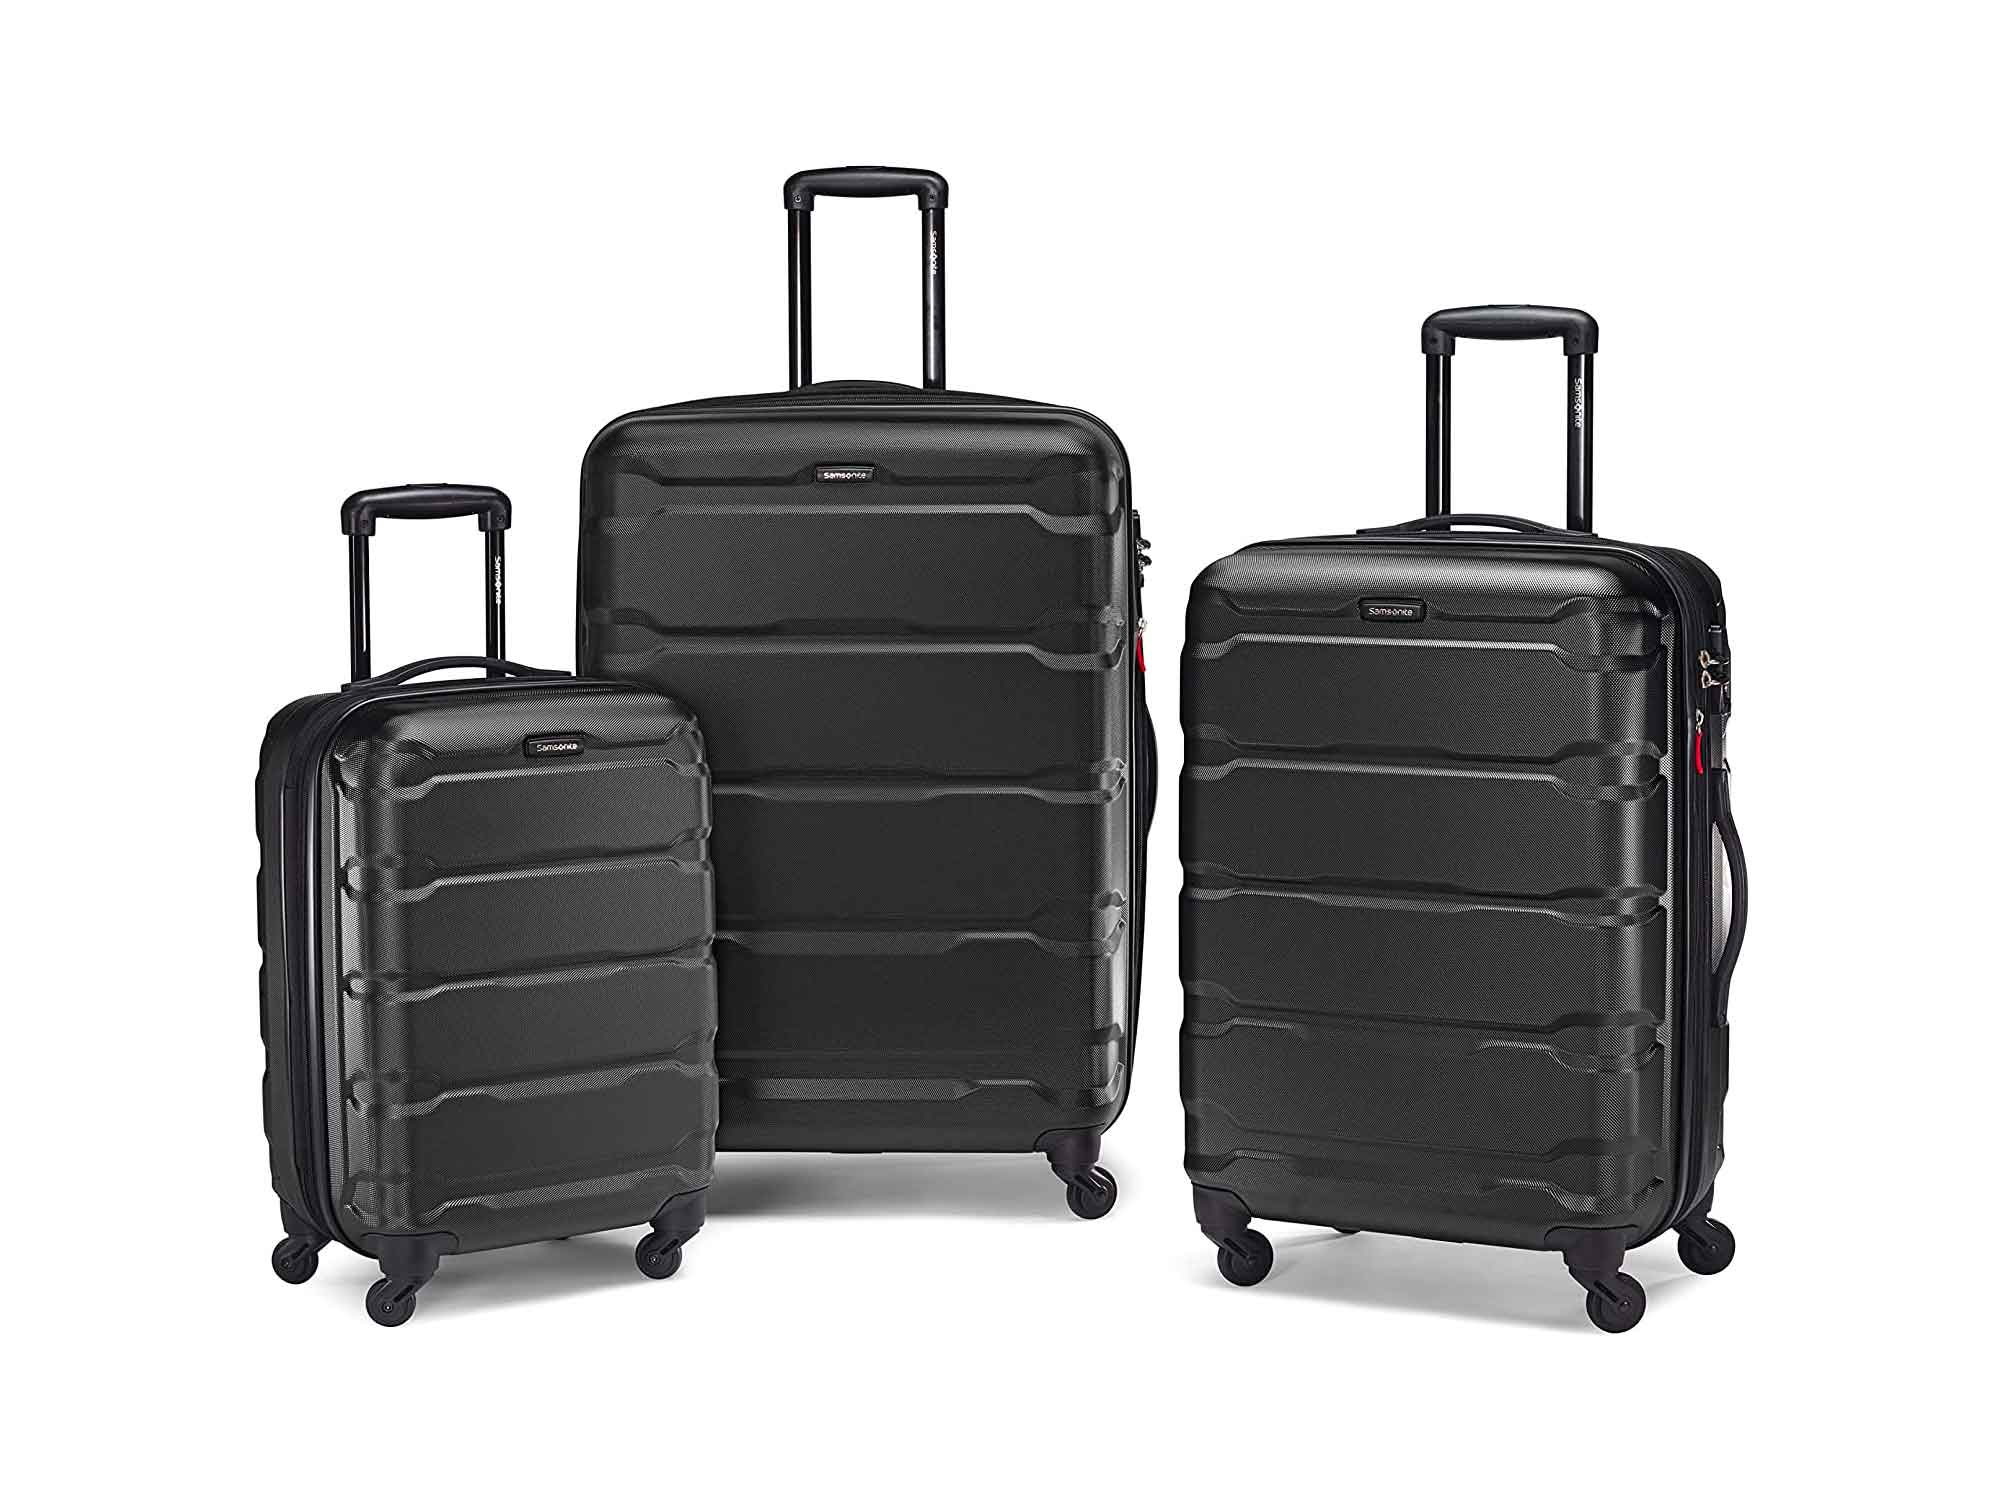 Samsonite Omni PC Hardside Expandable Luggage with Spinner Wheels, Black, 3-Piece Set